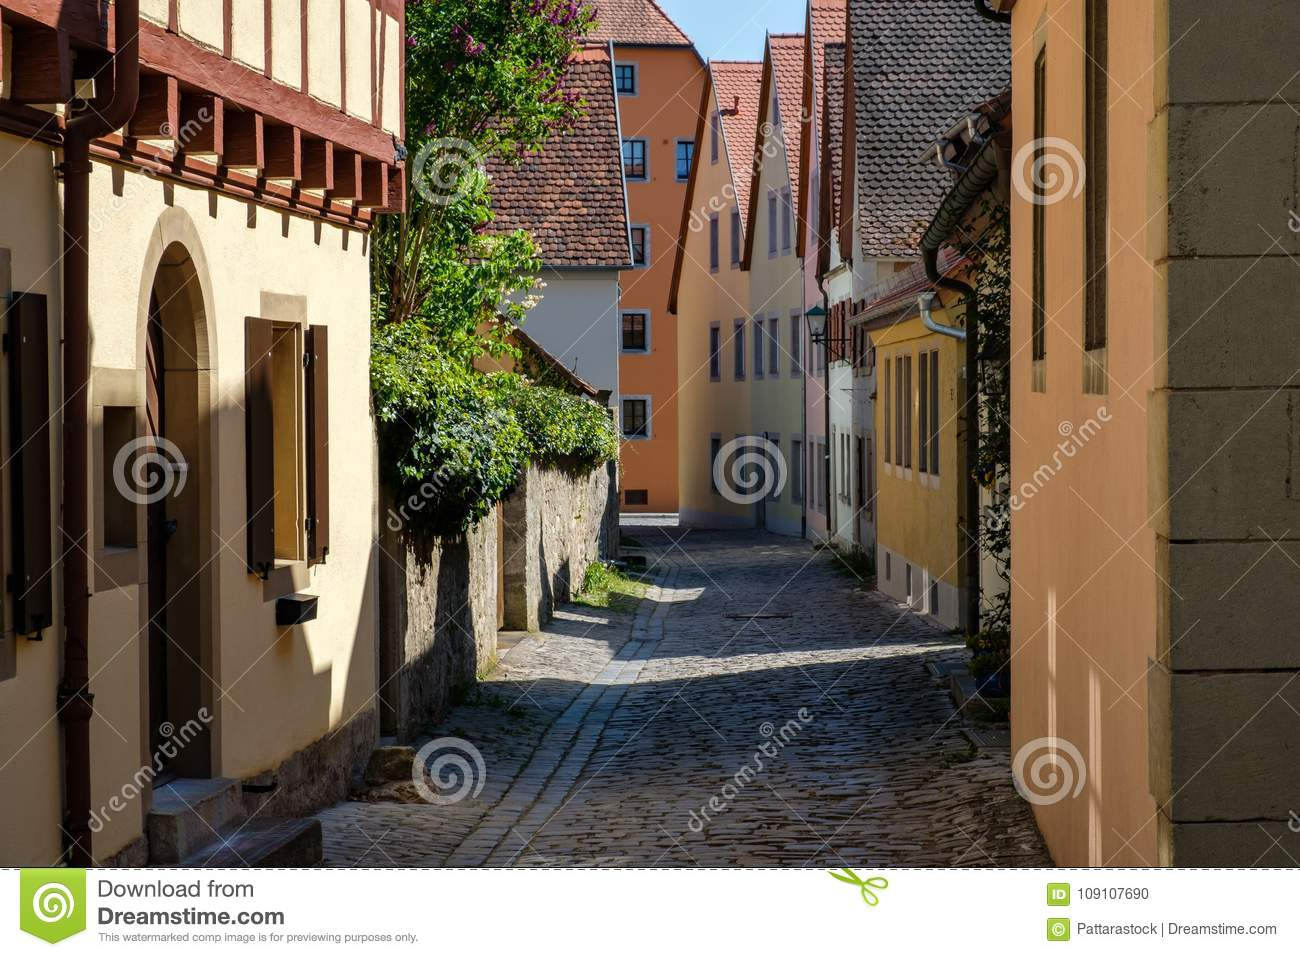 Colorful building in old street of Rothenburg ob der Tauber, Bavaria, Germany.